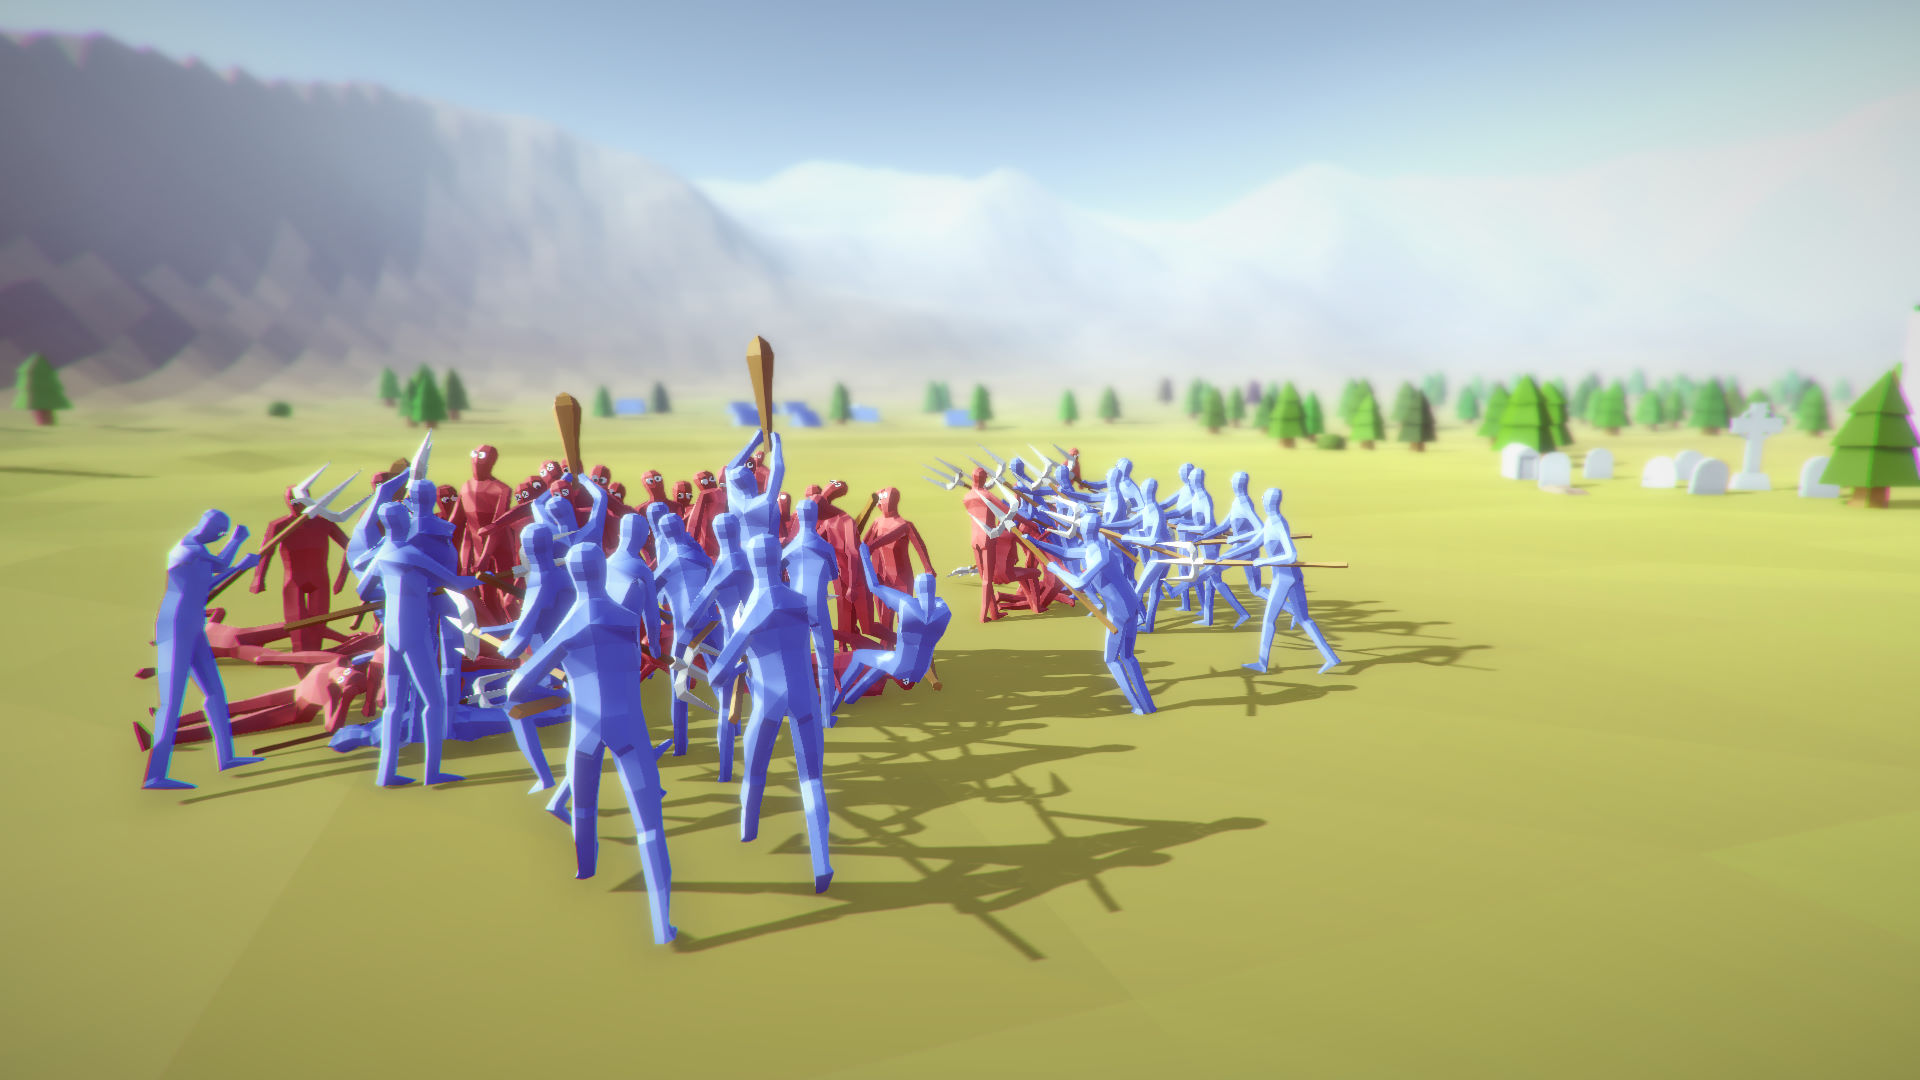 Totally Accurate Battle Simulator / TABS v0.3.6192.6310